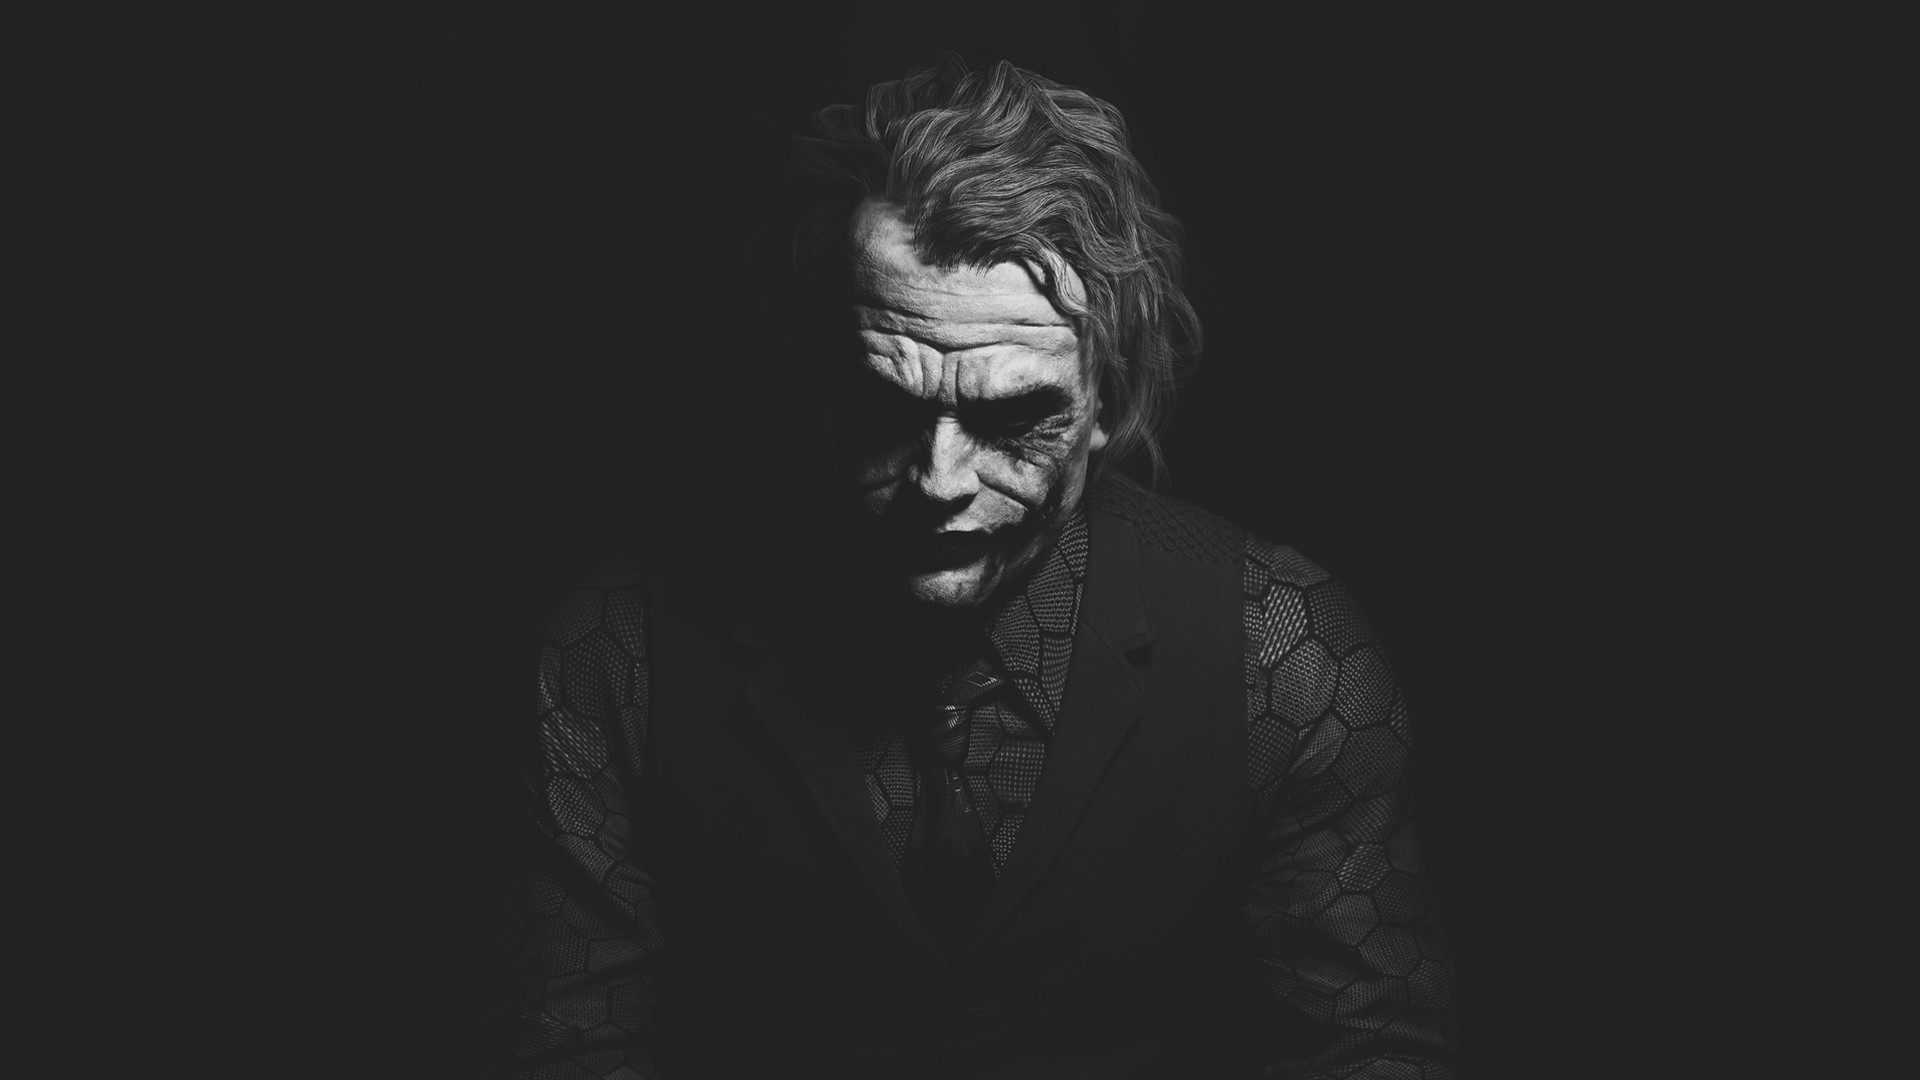 Joker 2, HD Movies, 4k Wallpapers, Images, Backgrounds ...